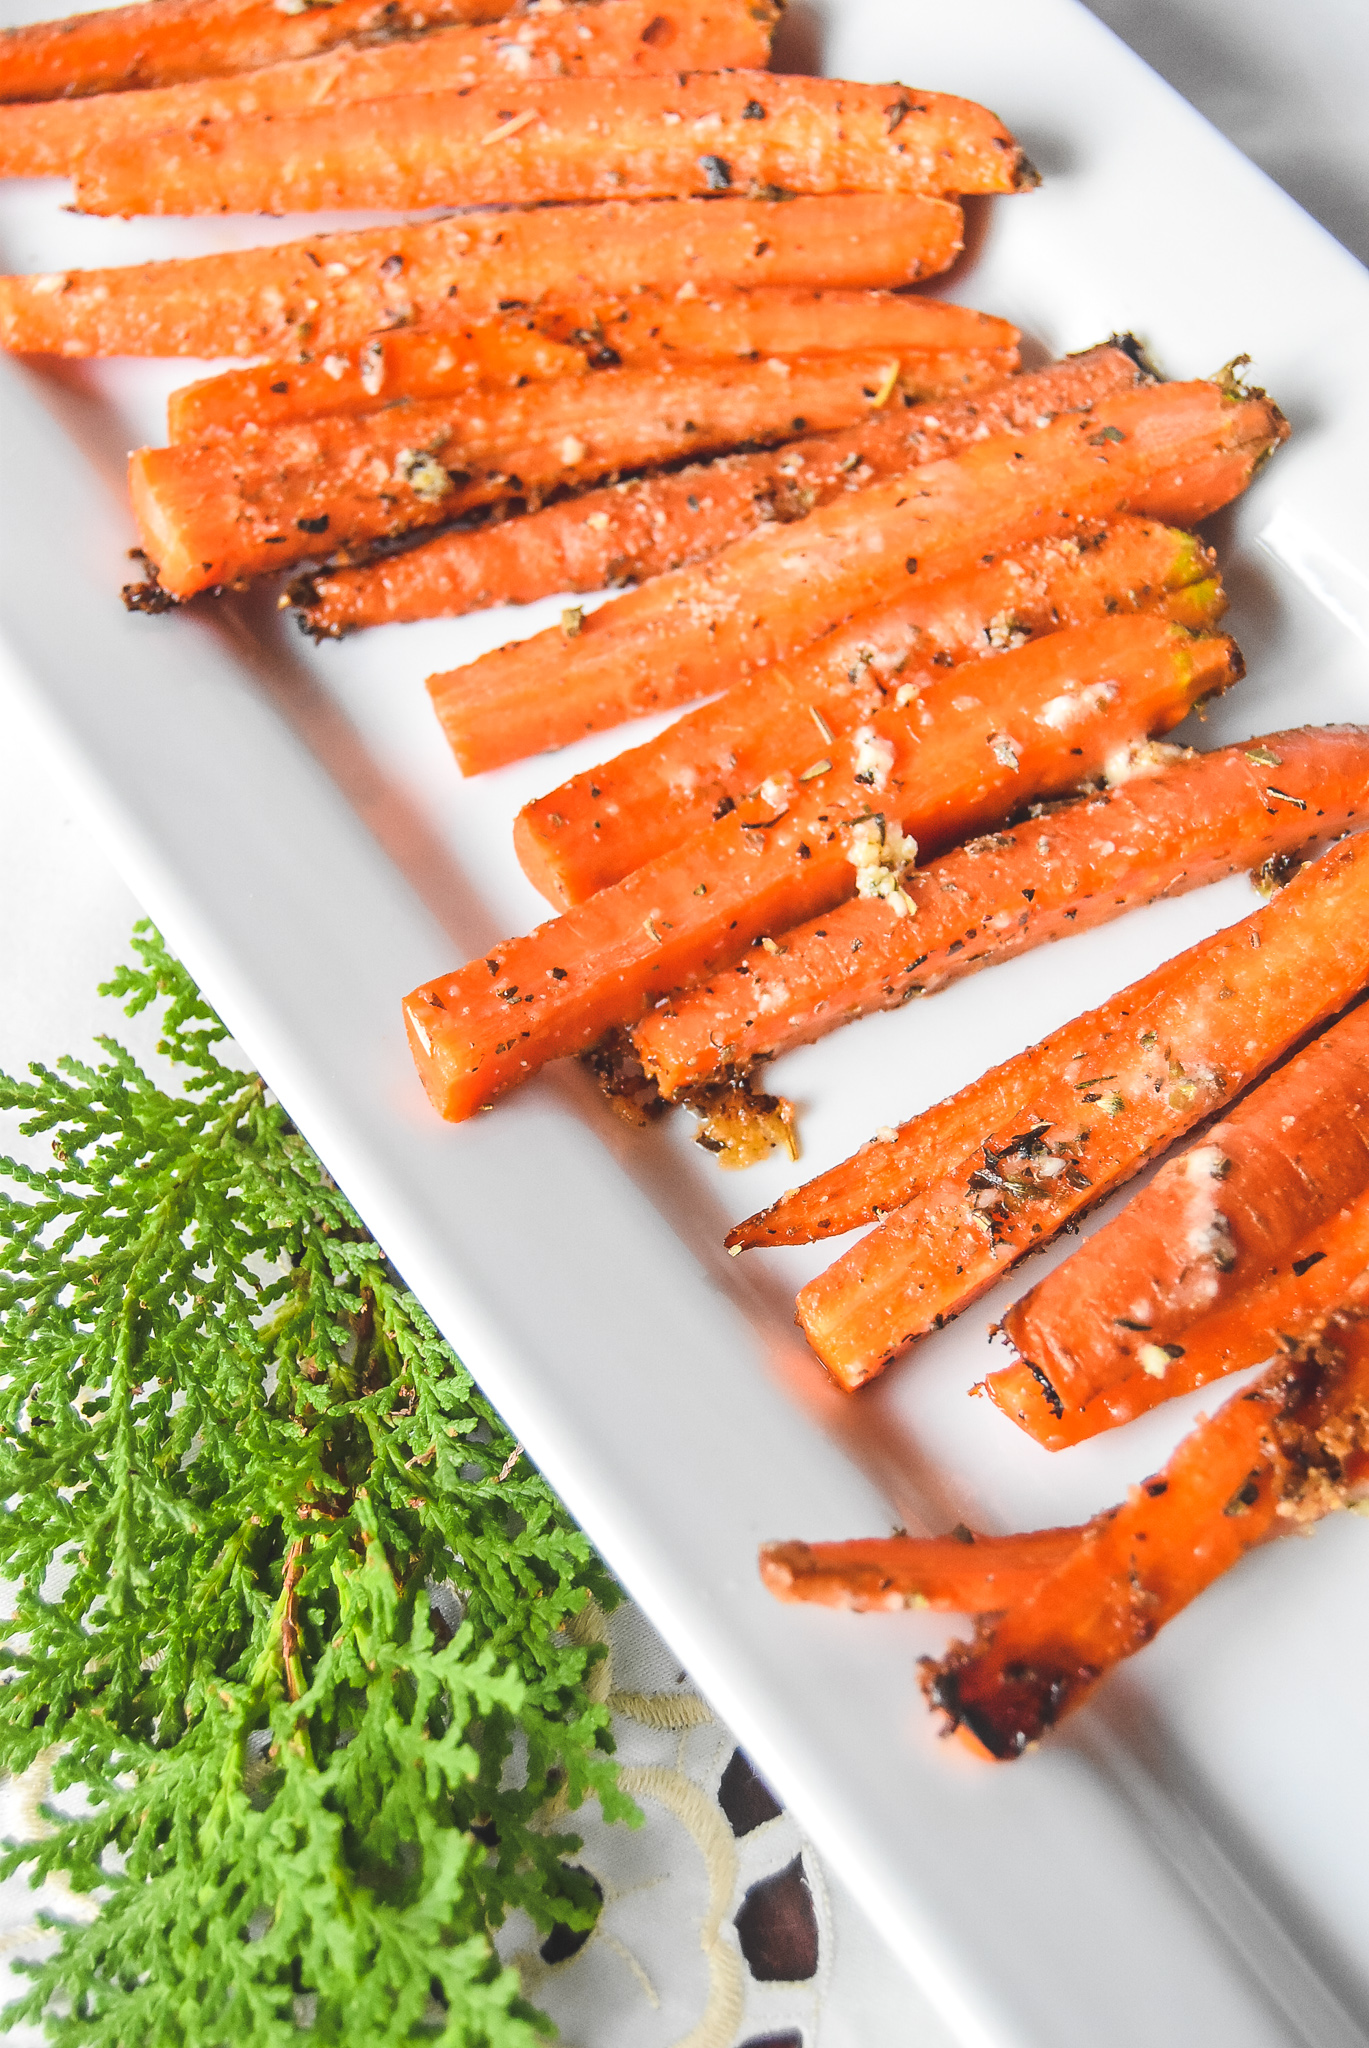 Garlic Parmesan Baked Carrot Fries 1.jpg